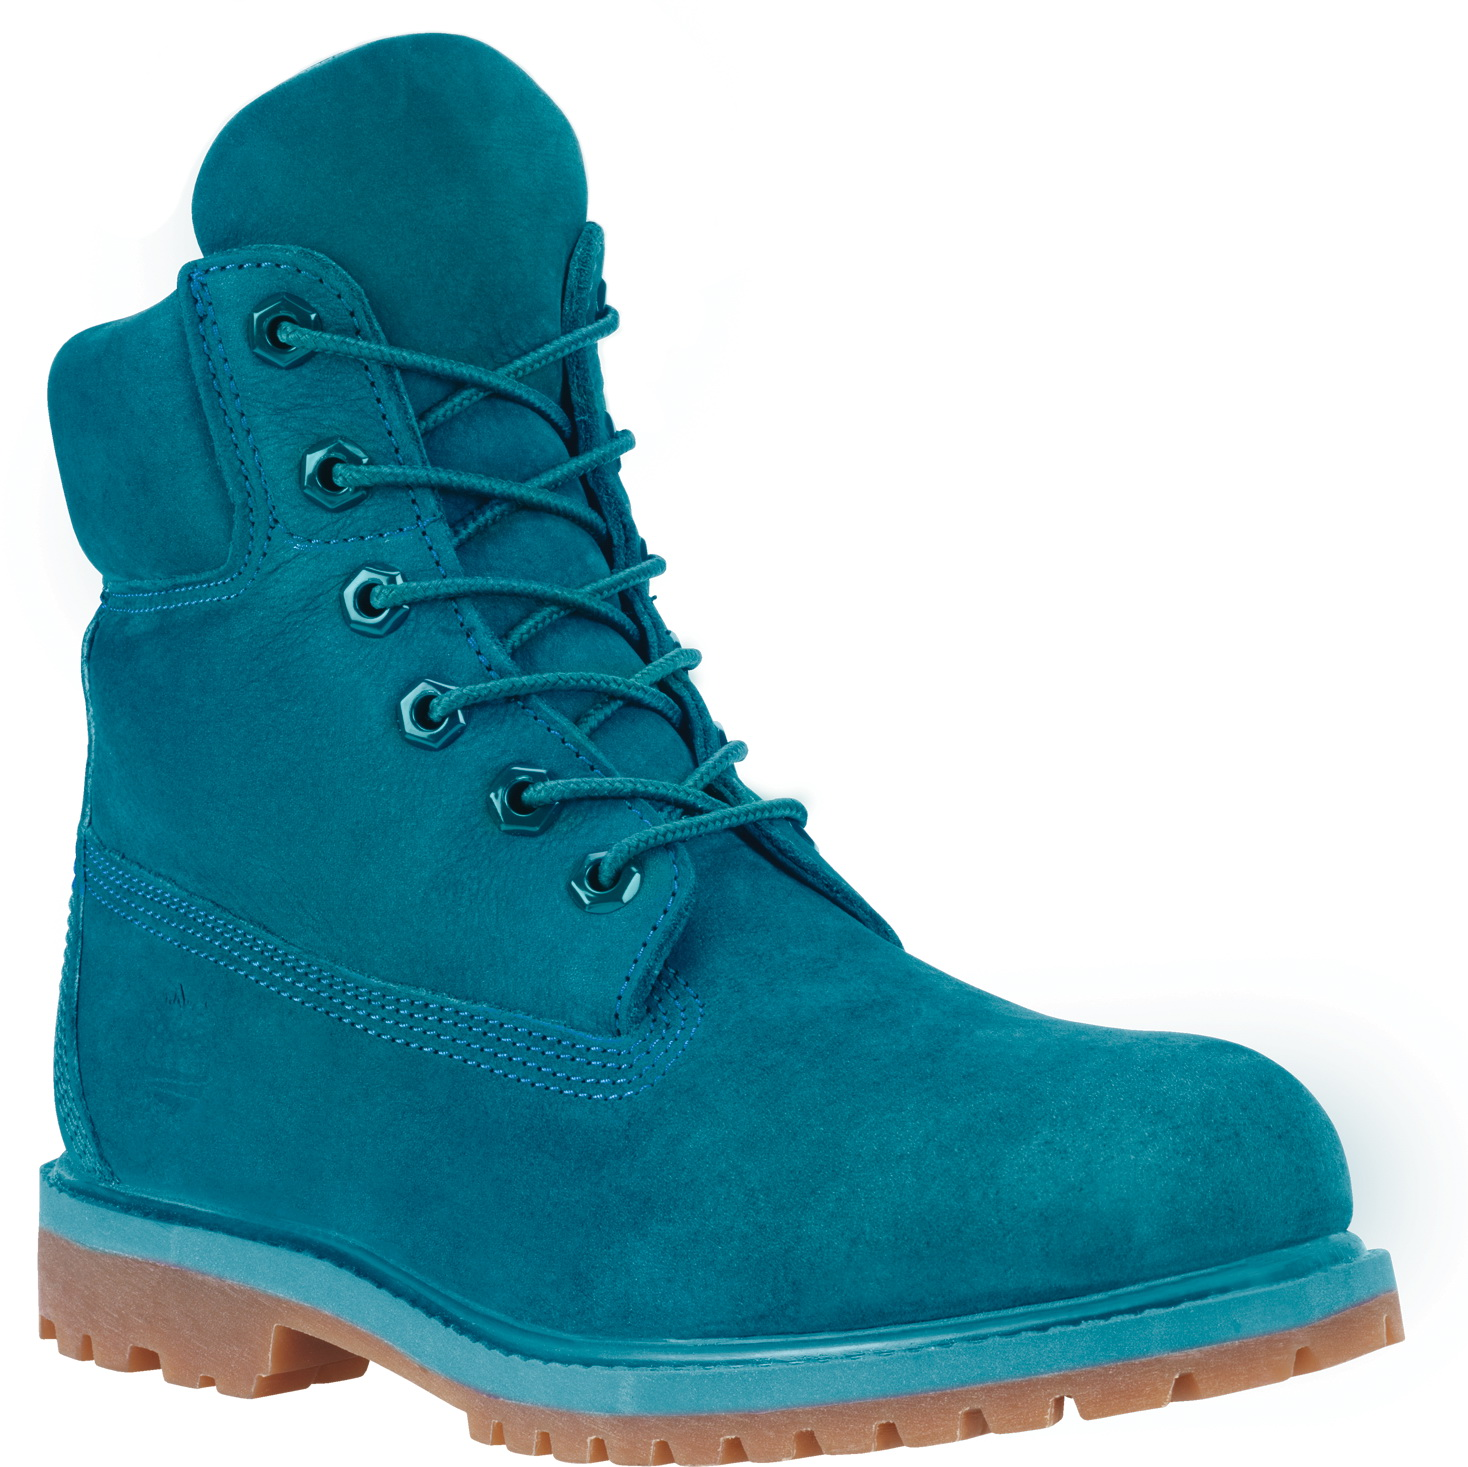 Colored Timberlands | Timberland Boots for Girls | Kids Timberlands